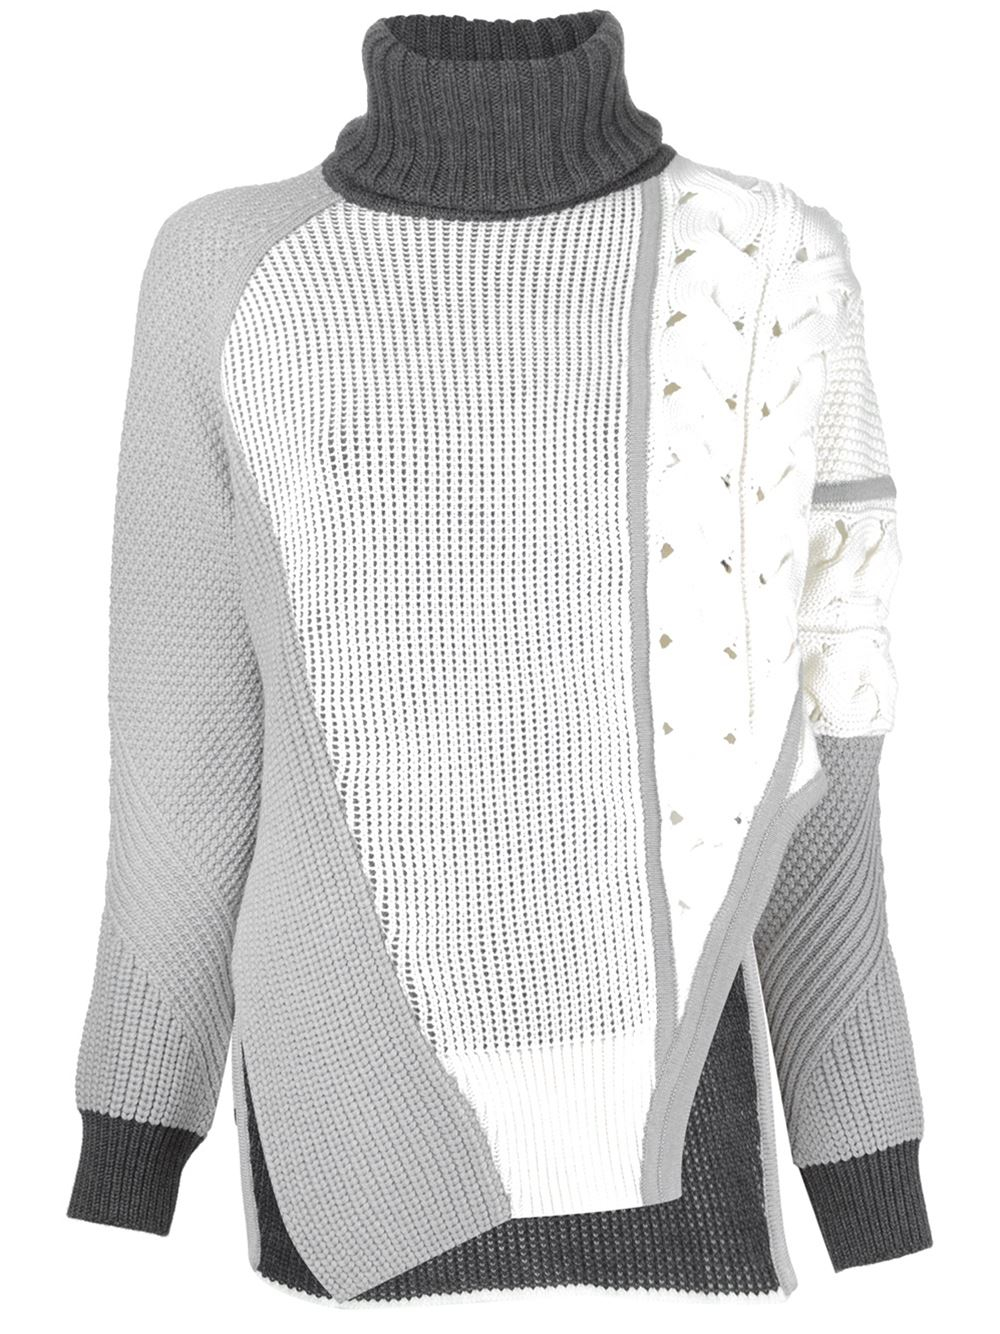 e6f0dac817 Lyst - Prabal Gurung Cable Knit Turtle Neck Sweater in White